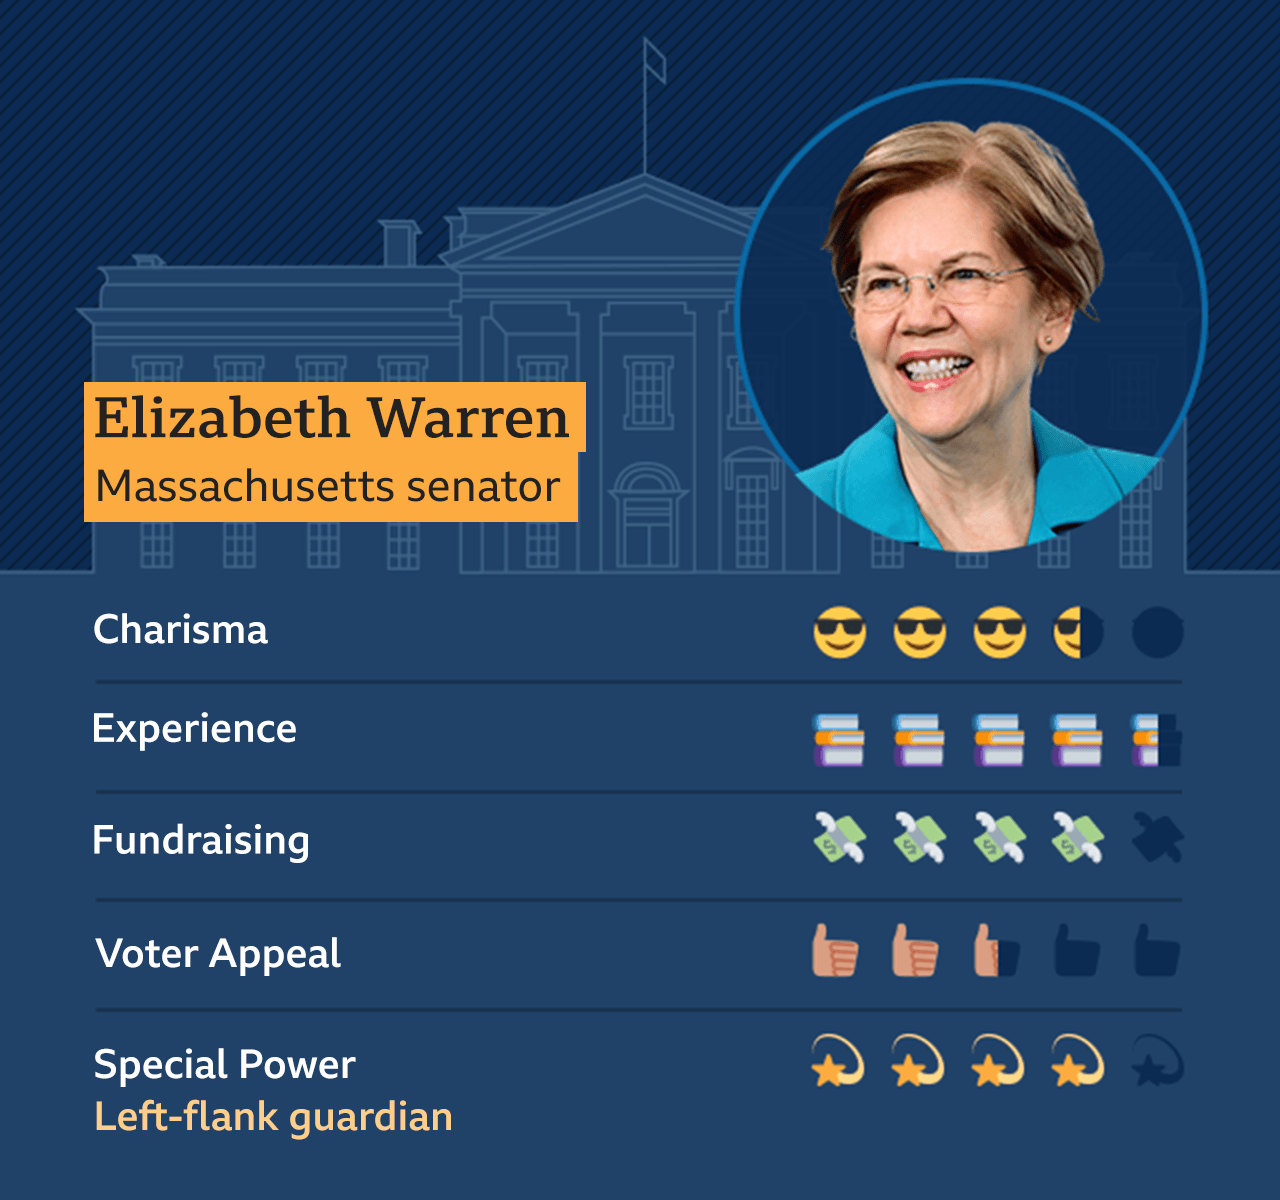 Graphic of Elizabeth Warren, Massachusetts Senator, Charisma - 3.5, Experience - 4.5, Fundraising - 4, Voter appeal - 2.5, Special Power - Left-flank guardian - 4